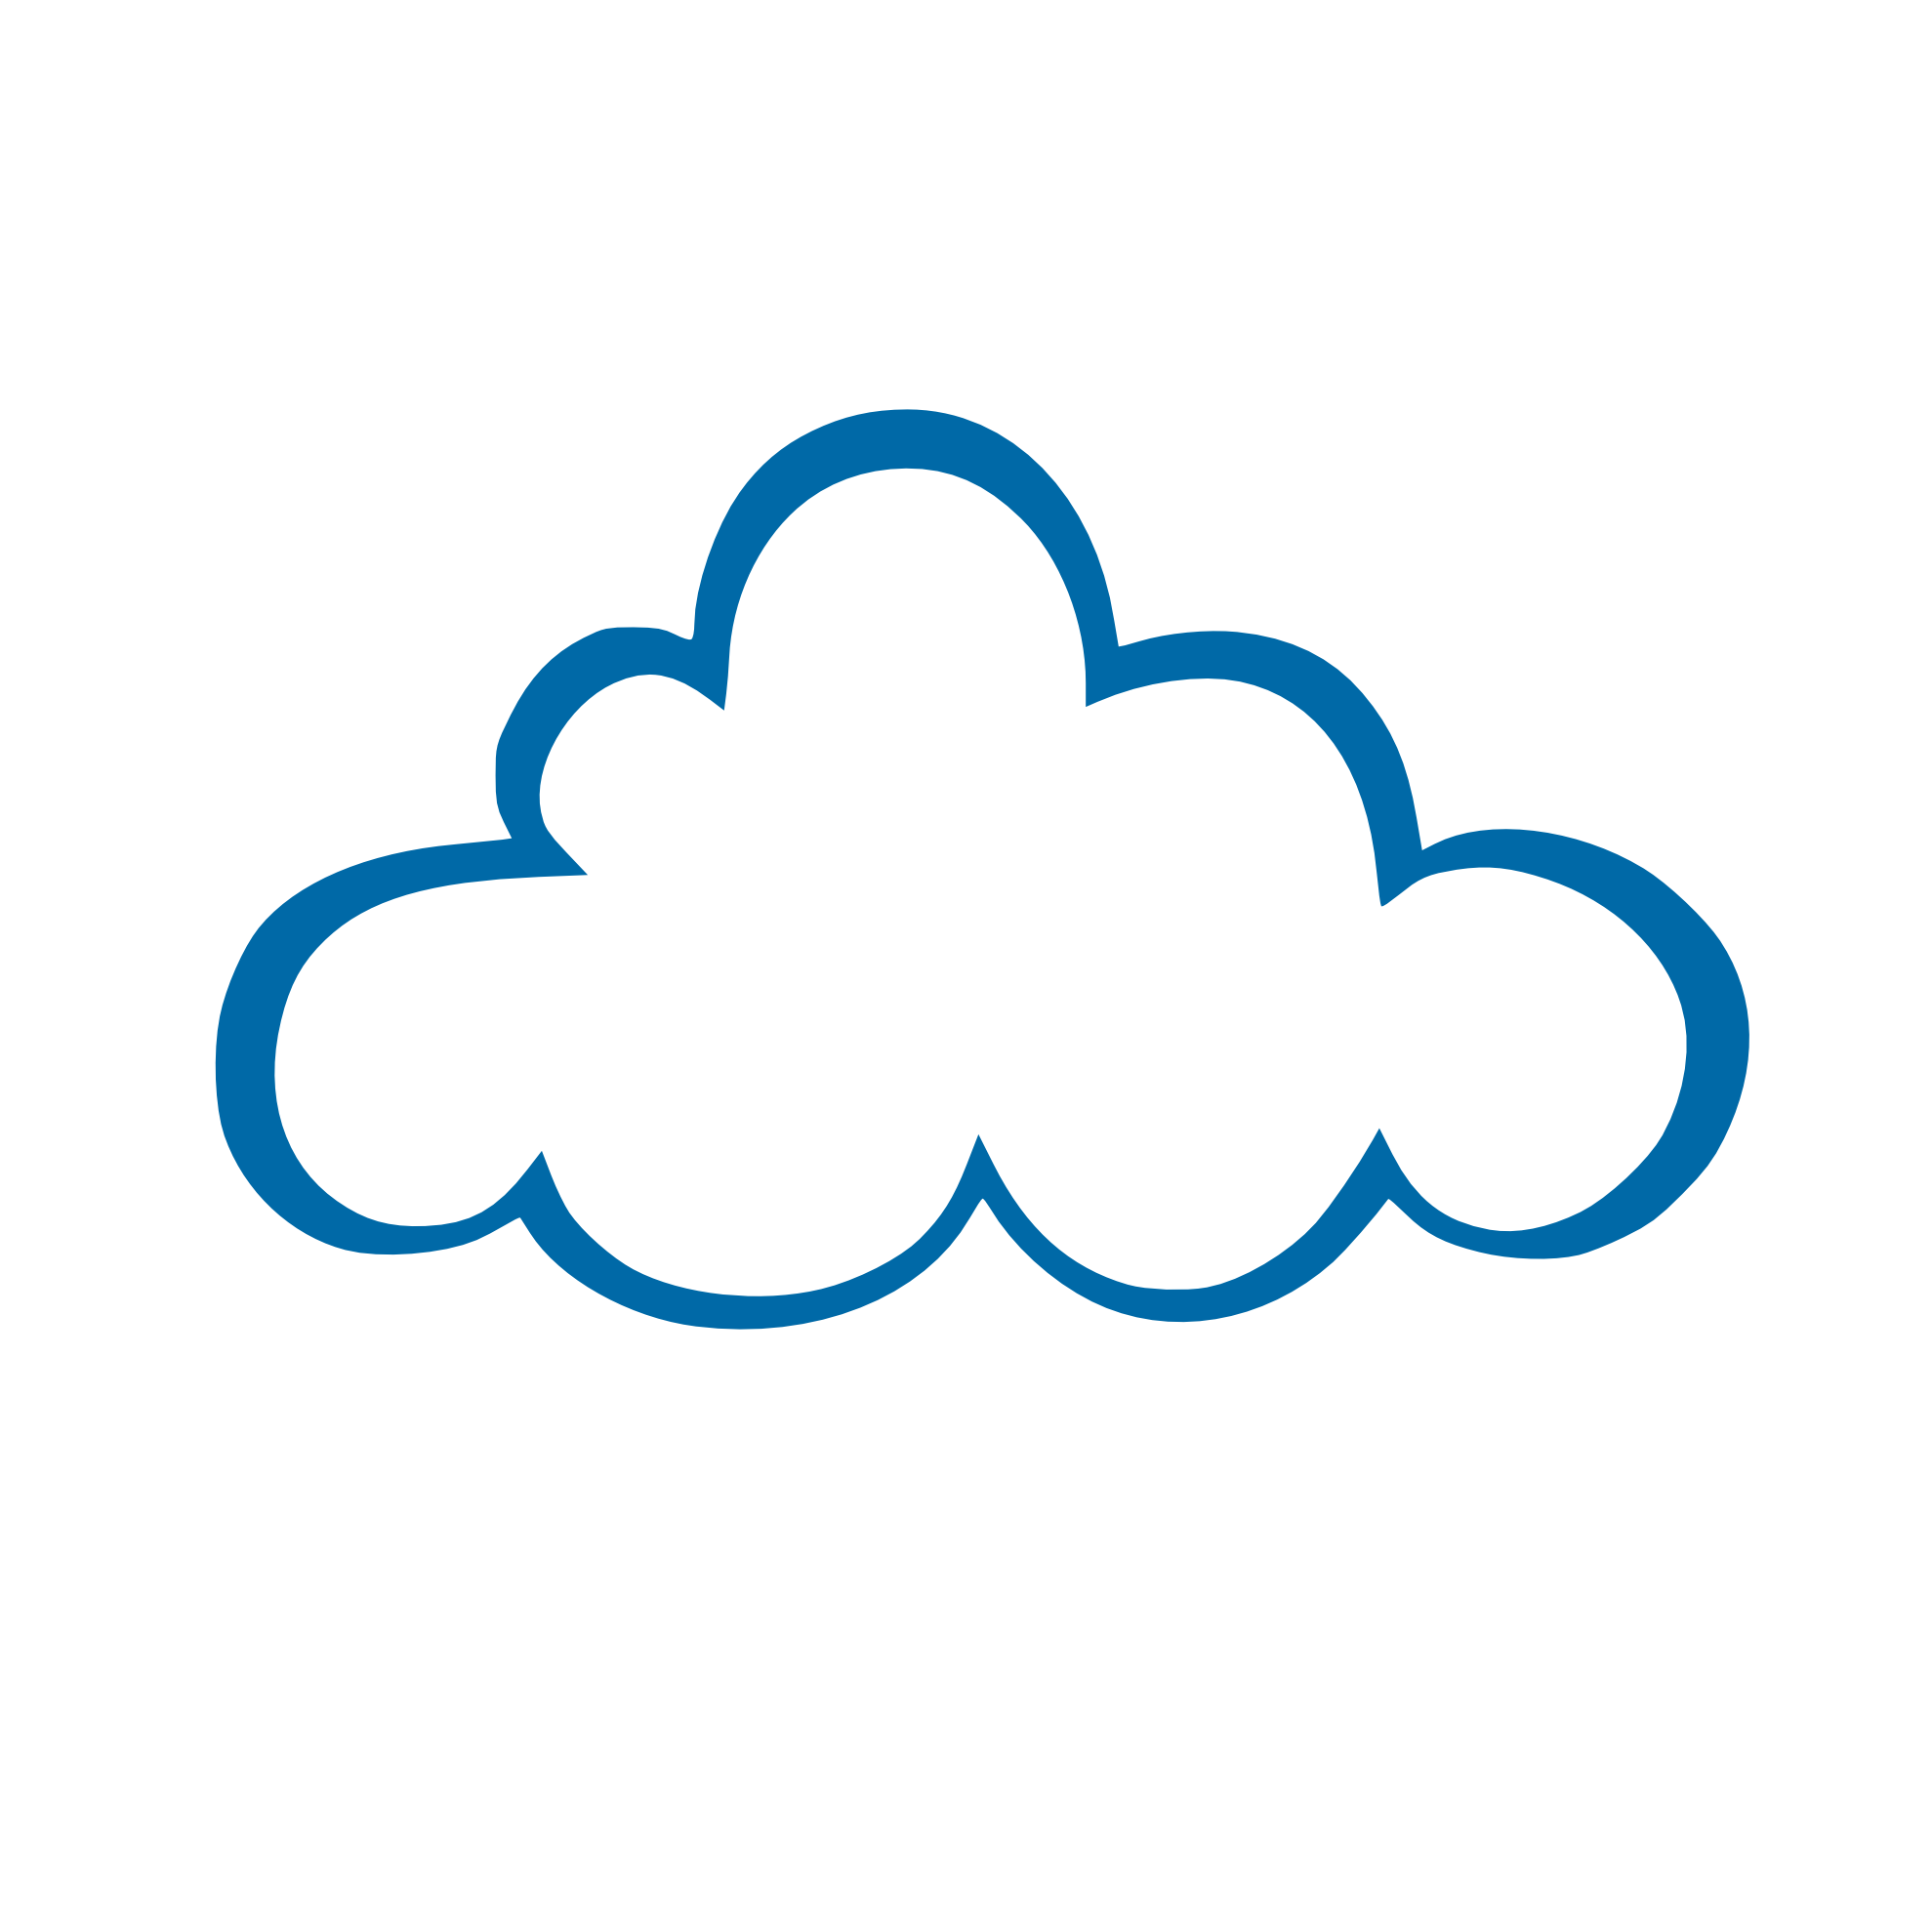 white-clouds-png-cloud-1979px.png